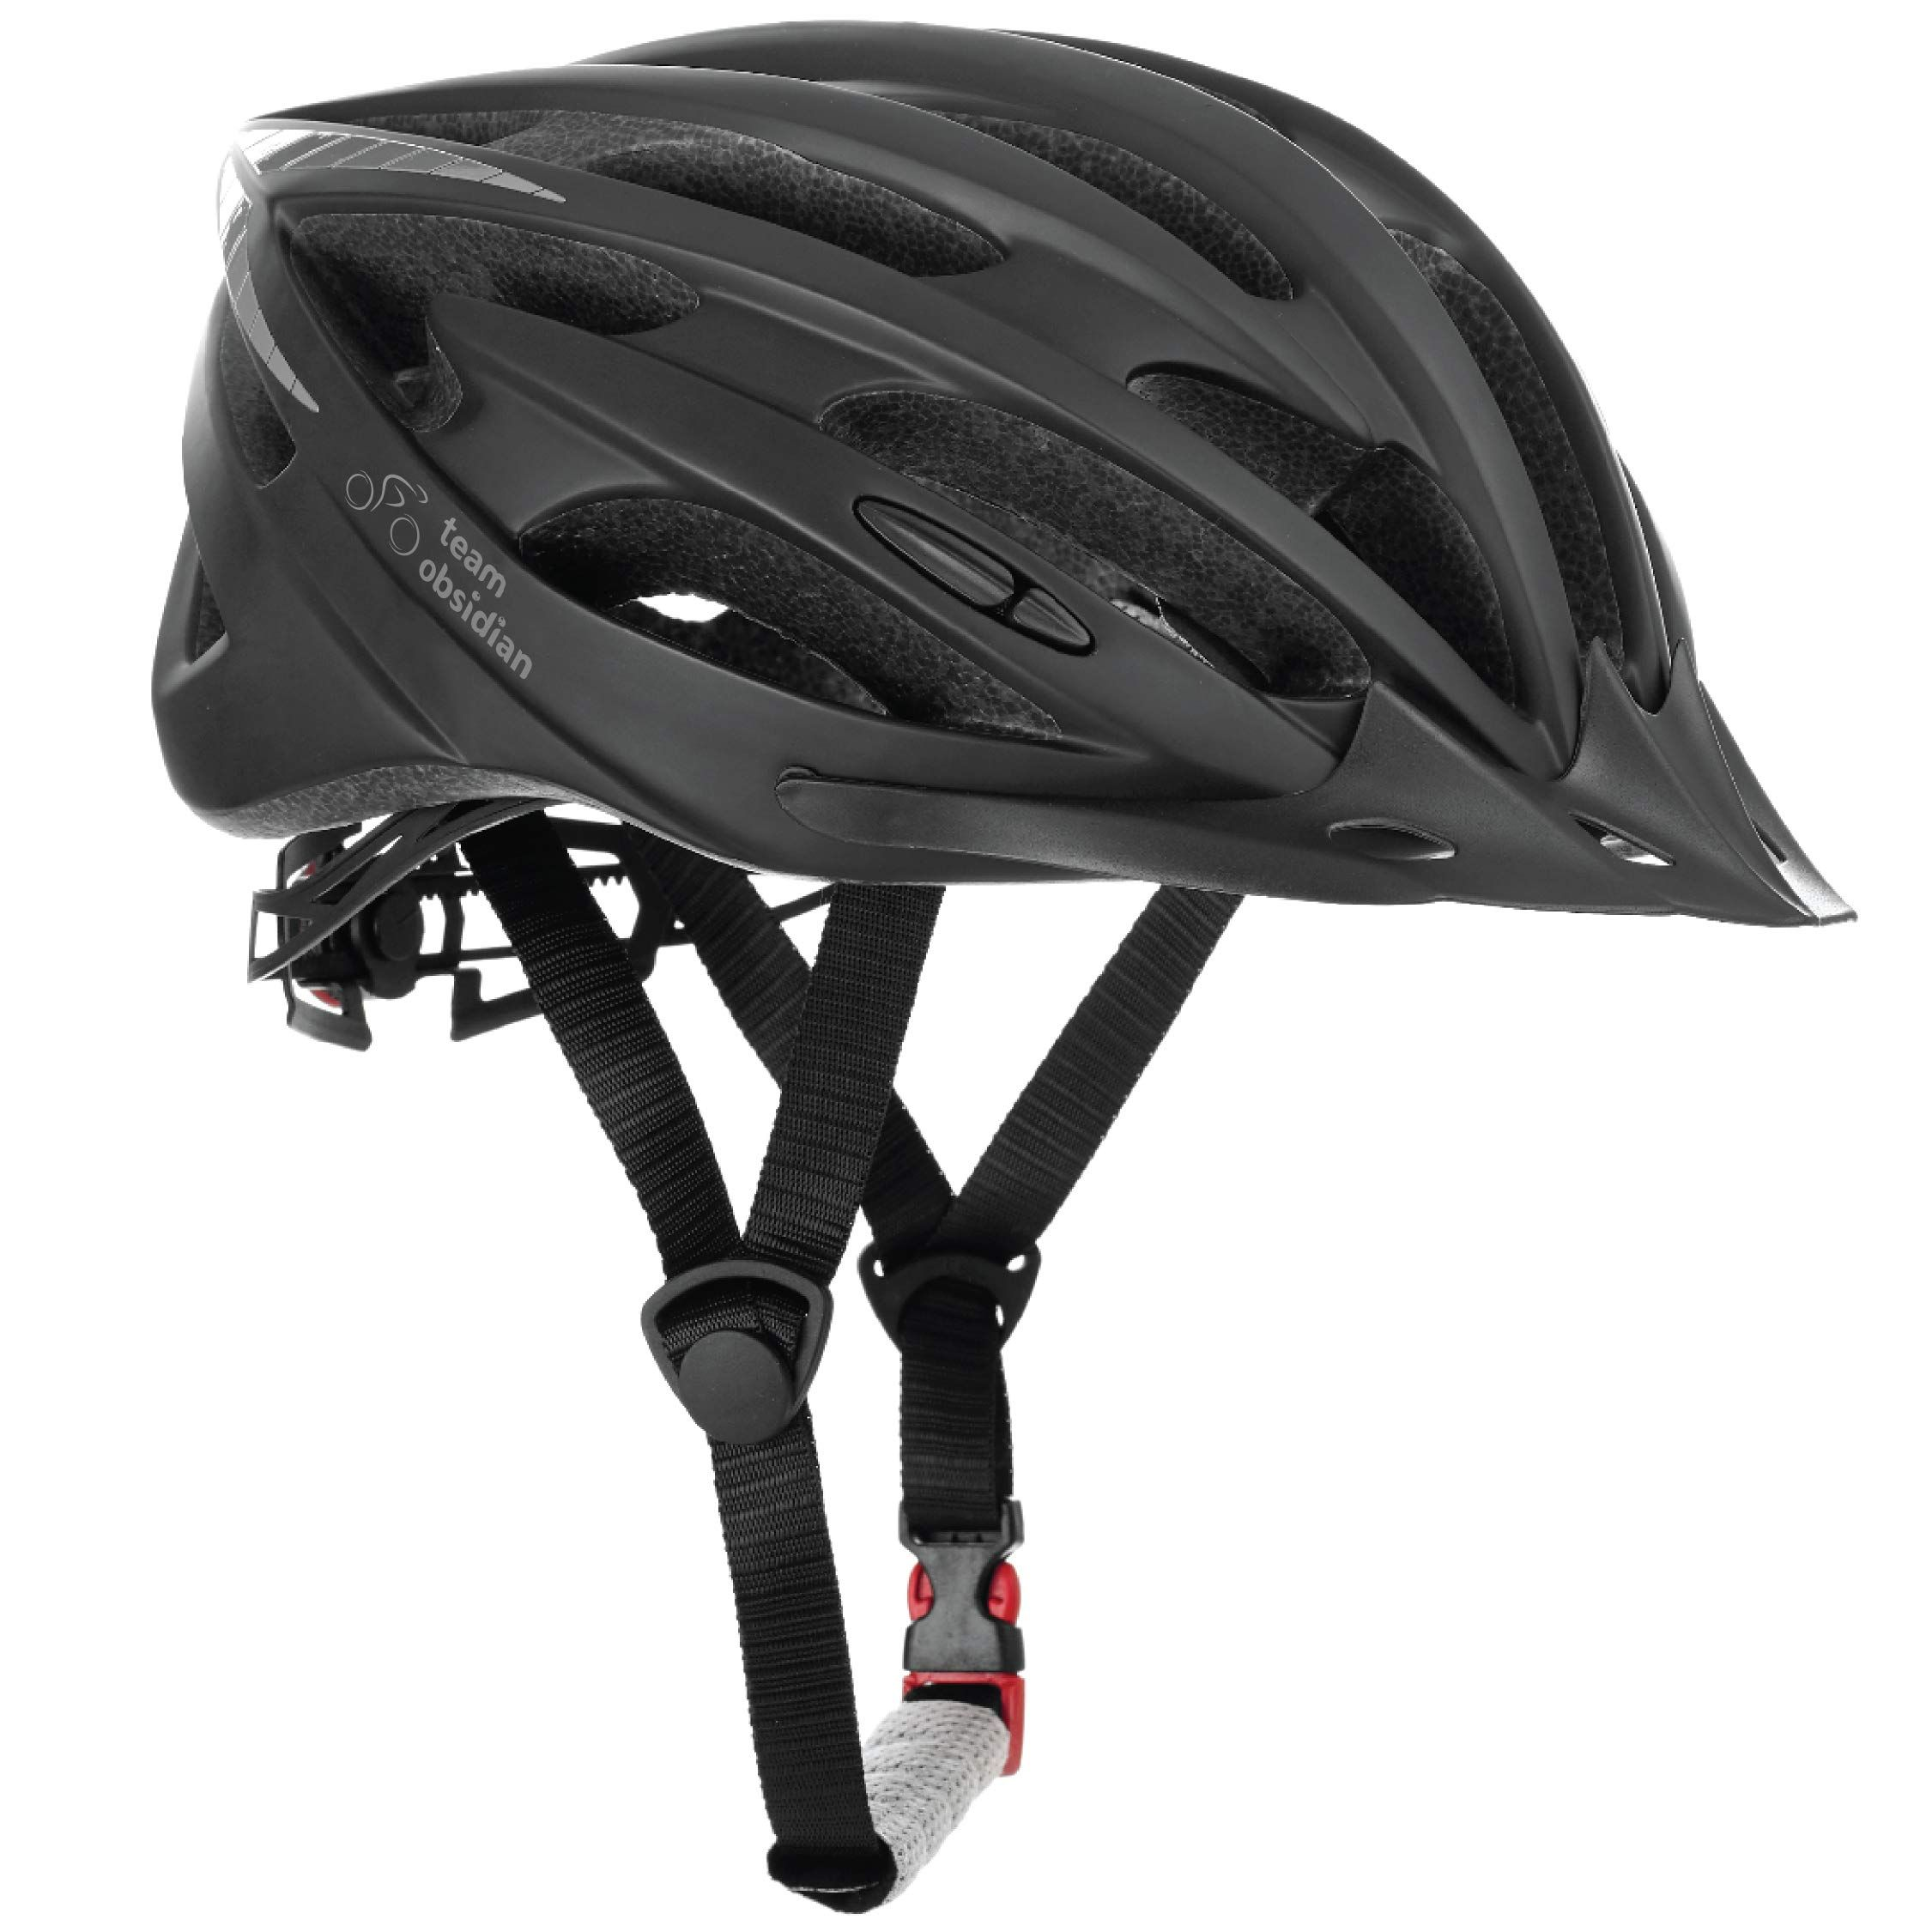 6 Best Rated Adult Bike Helmets By Customer Reviews (With